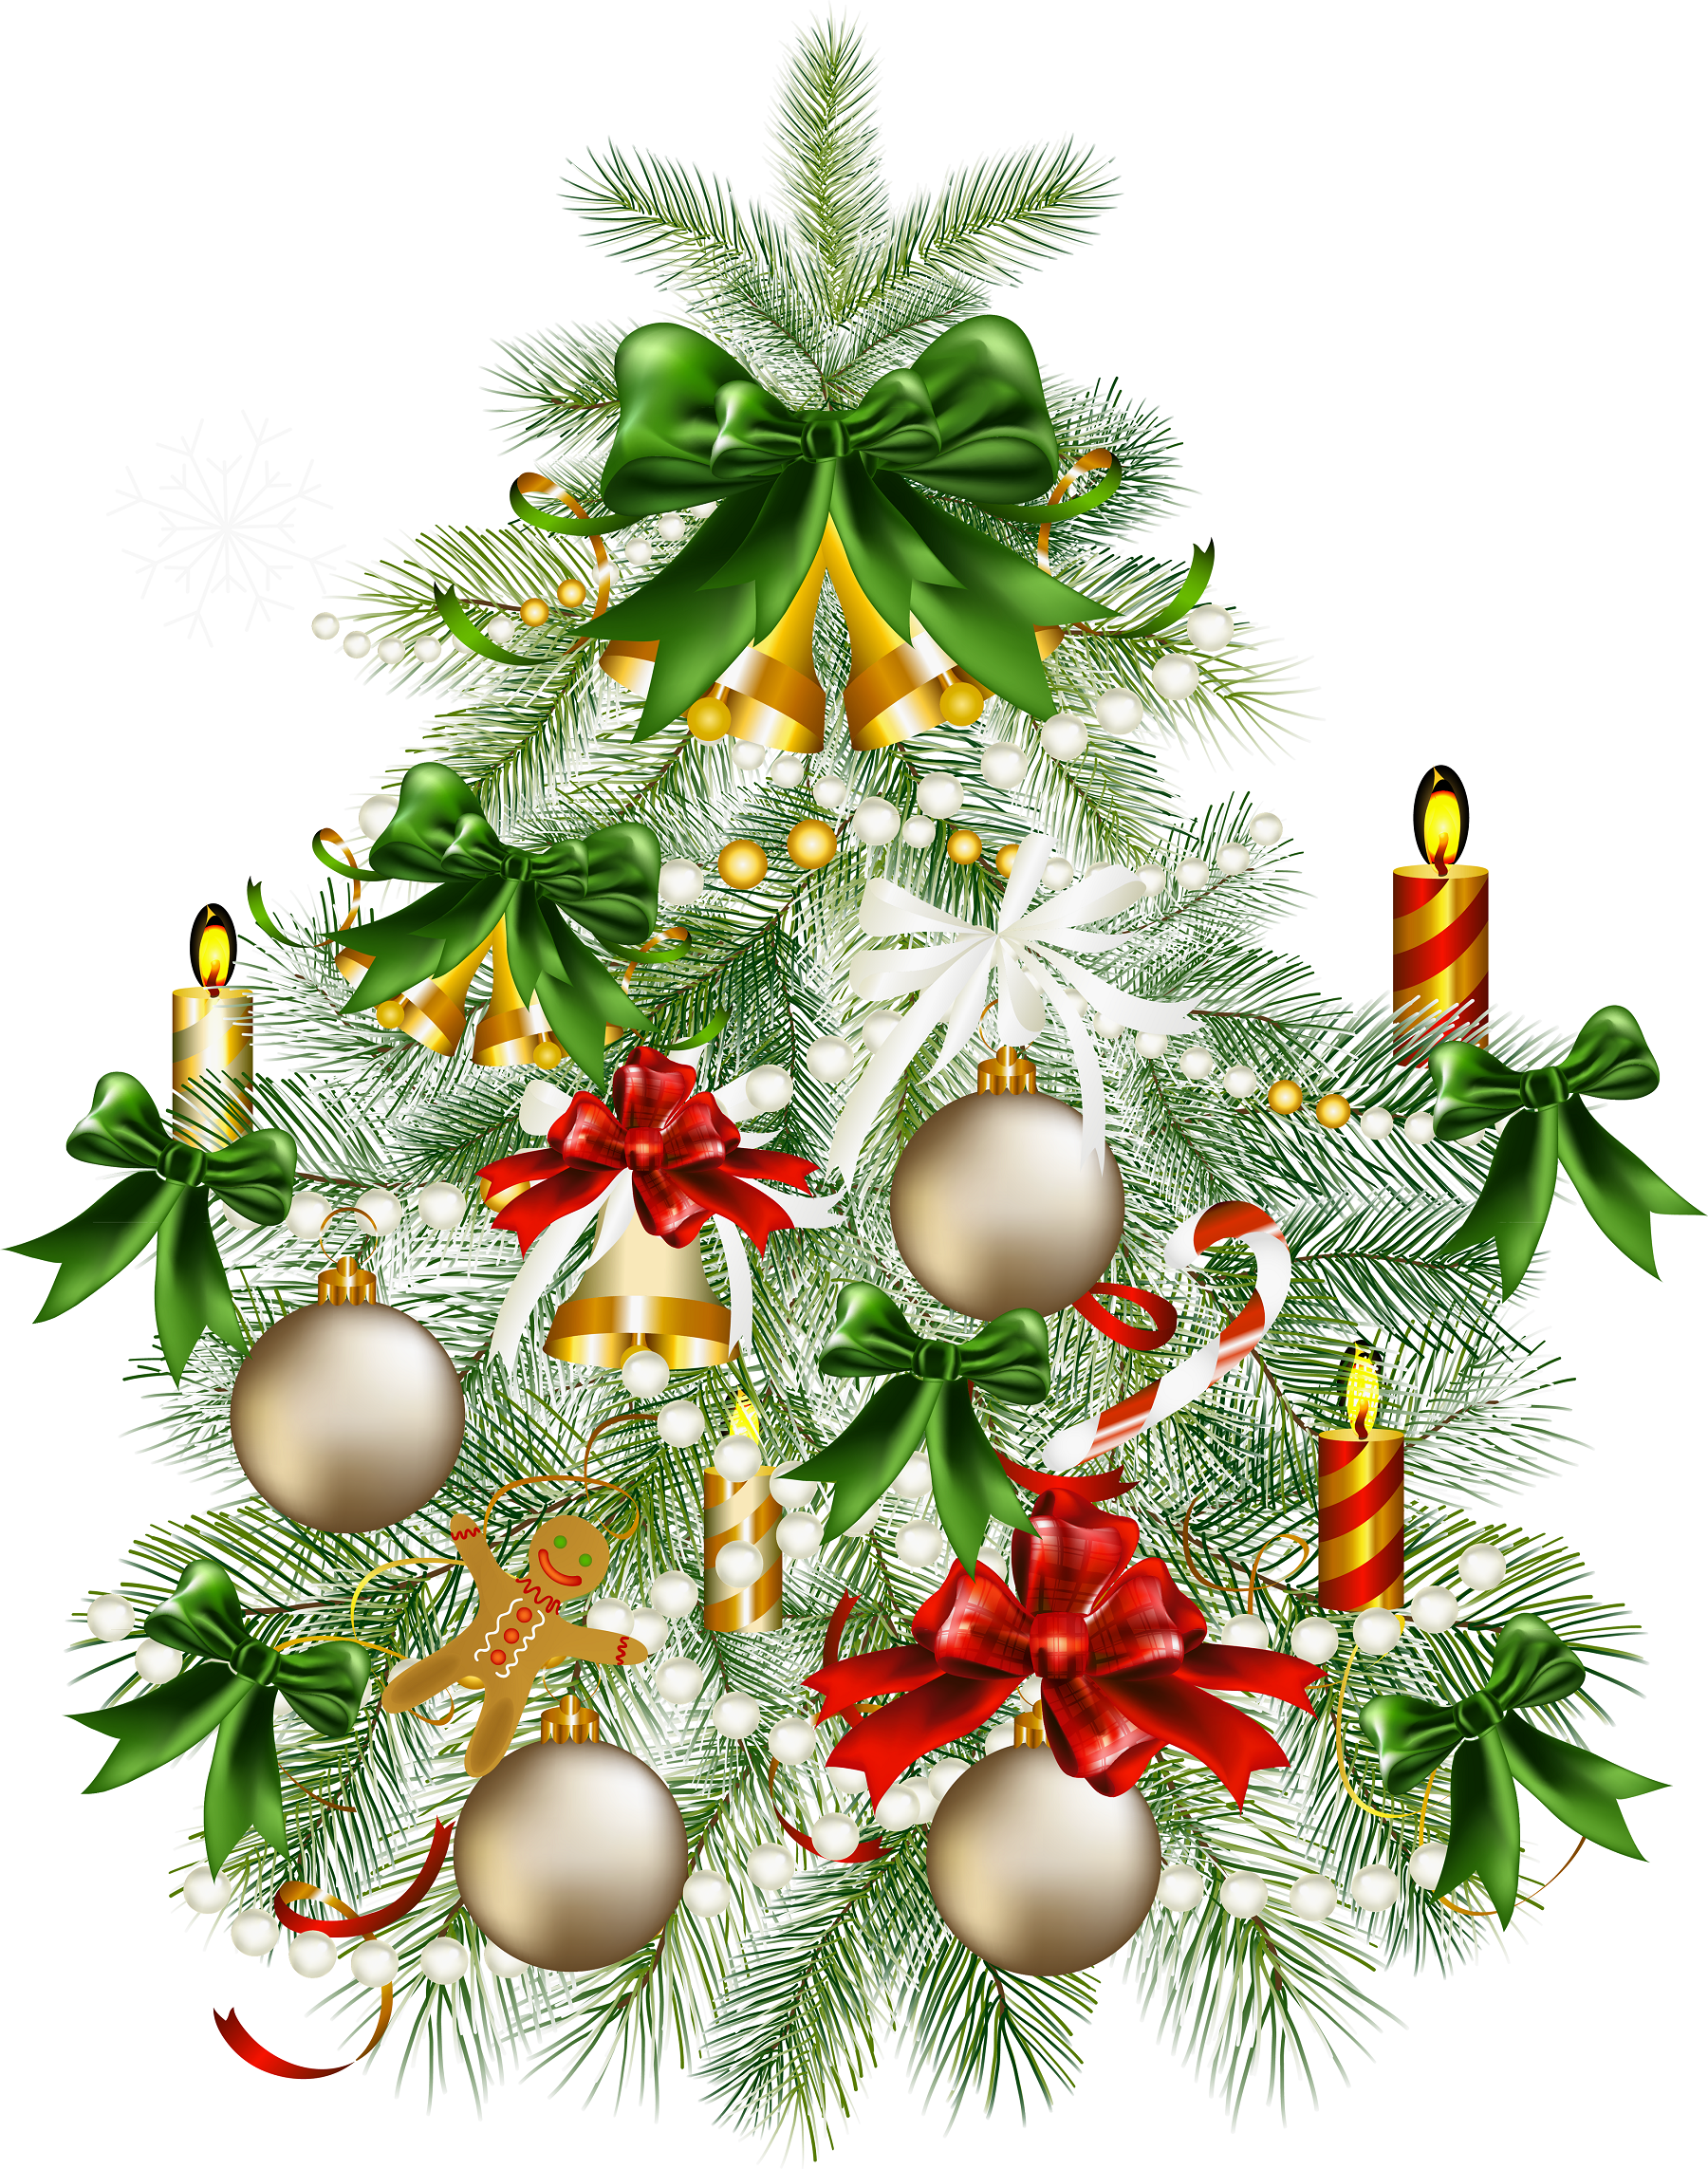 Lustige Weihnachtsmotive Clipart.Christmas Tree Clip Art Large Clip Art Holiday Scrapbook Cards